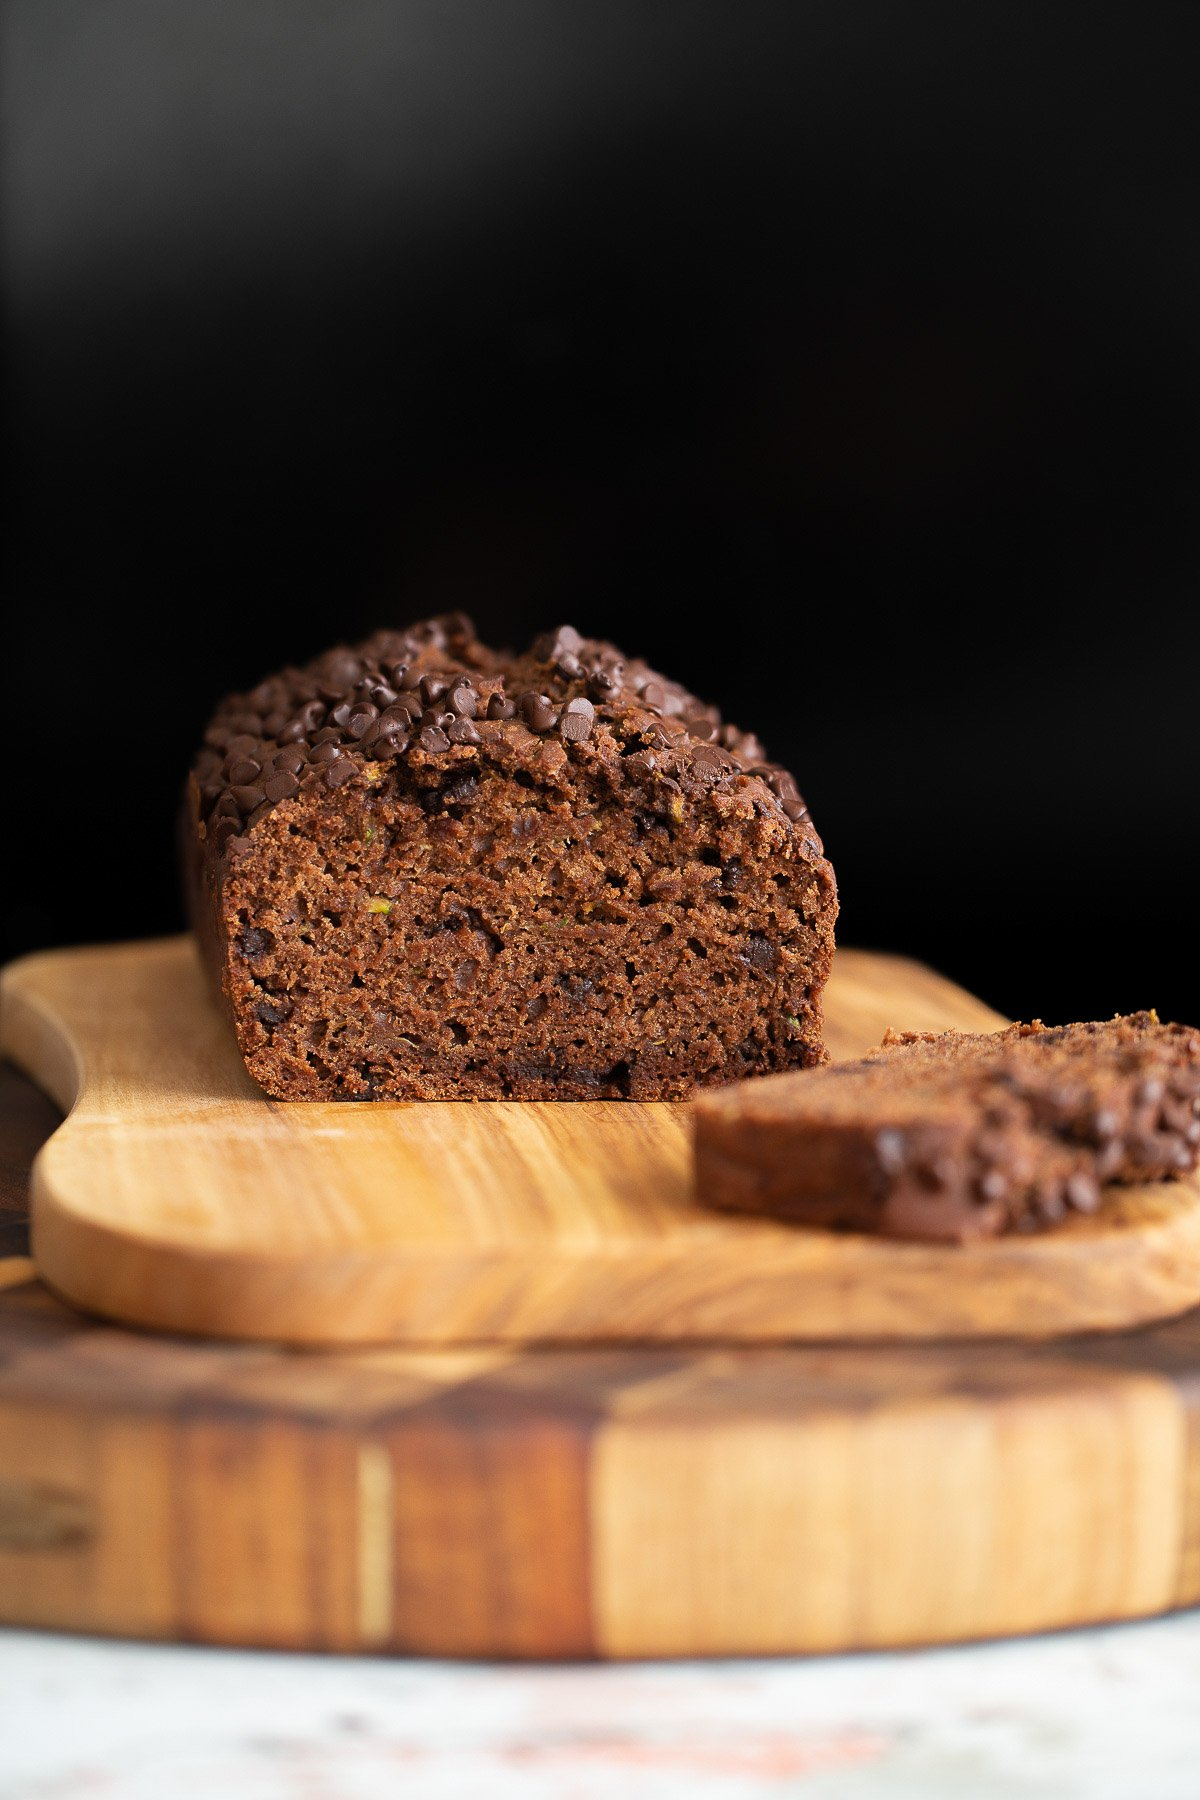 a sliced loaf of chocolate zucchini bread on a wooden chopping board